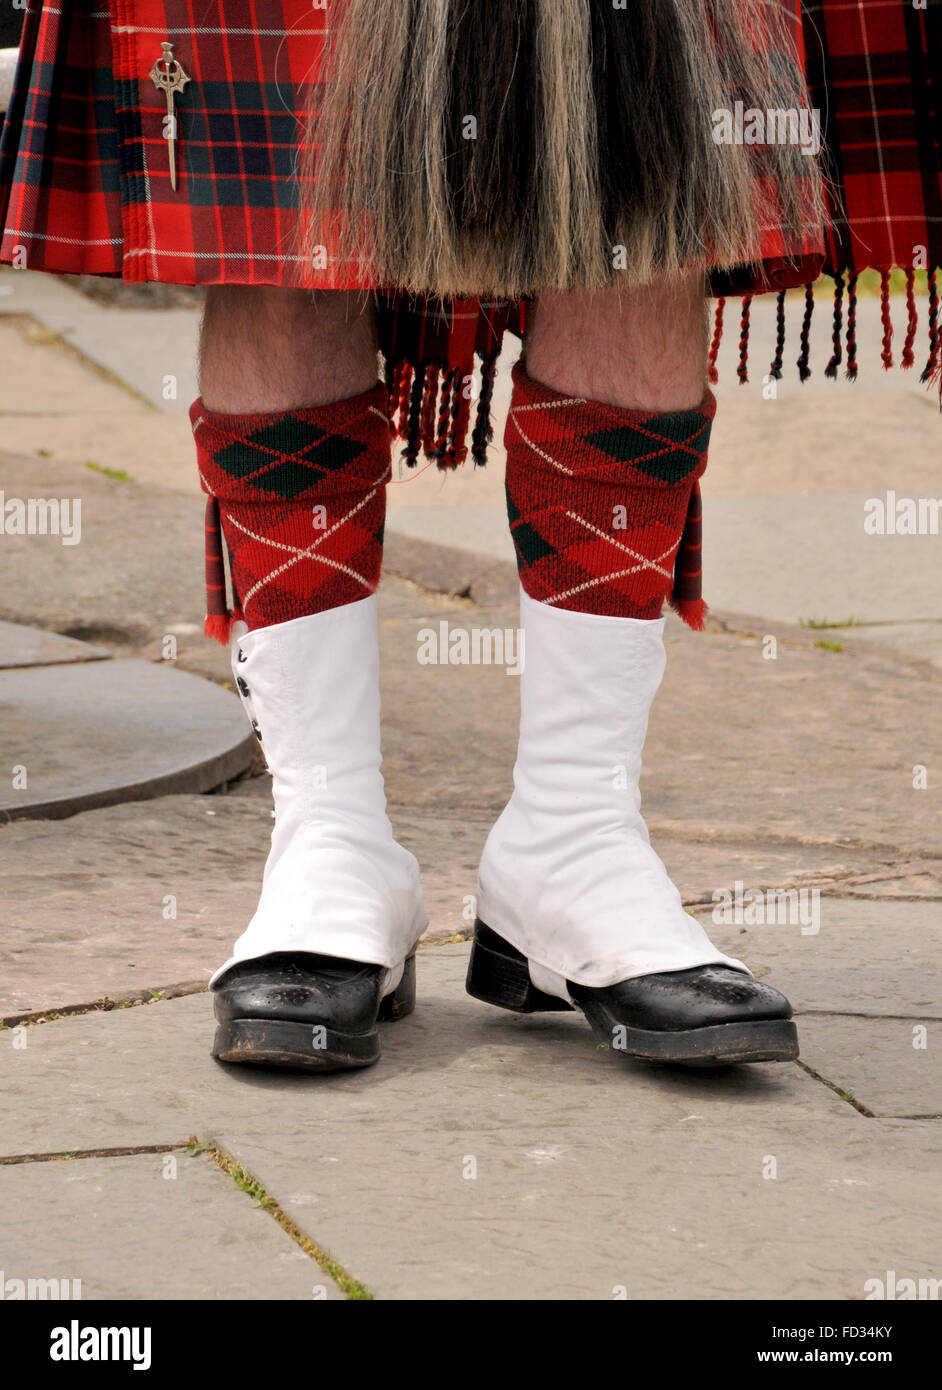 legs and footwear of a standing Scottish man dressed in a red checked tartan kilt. - Stock Image